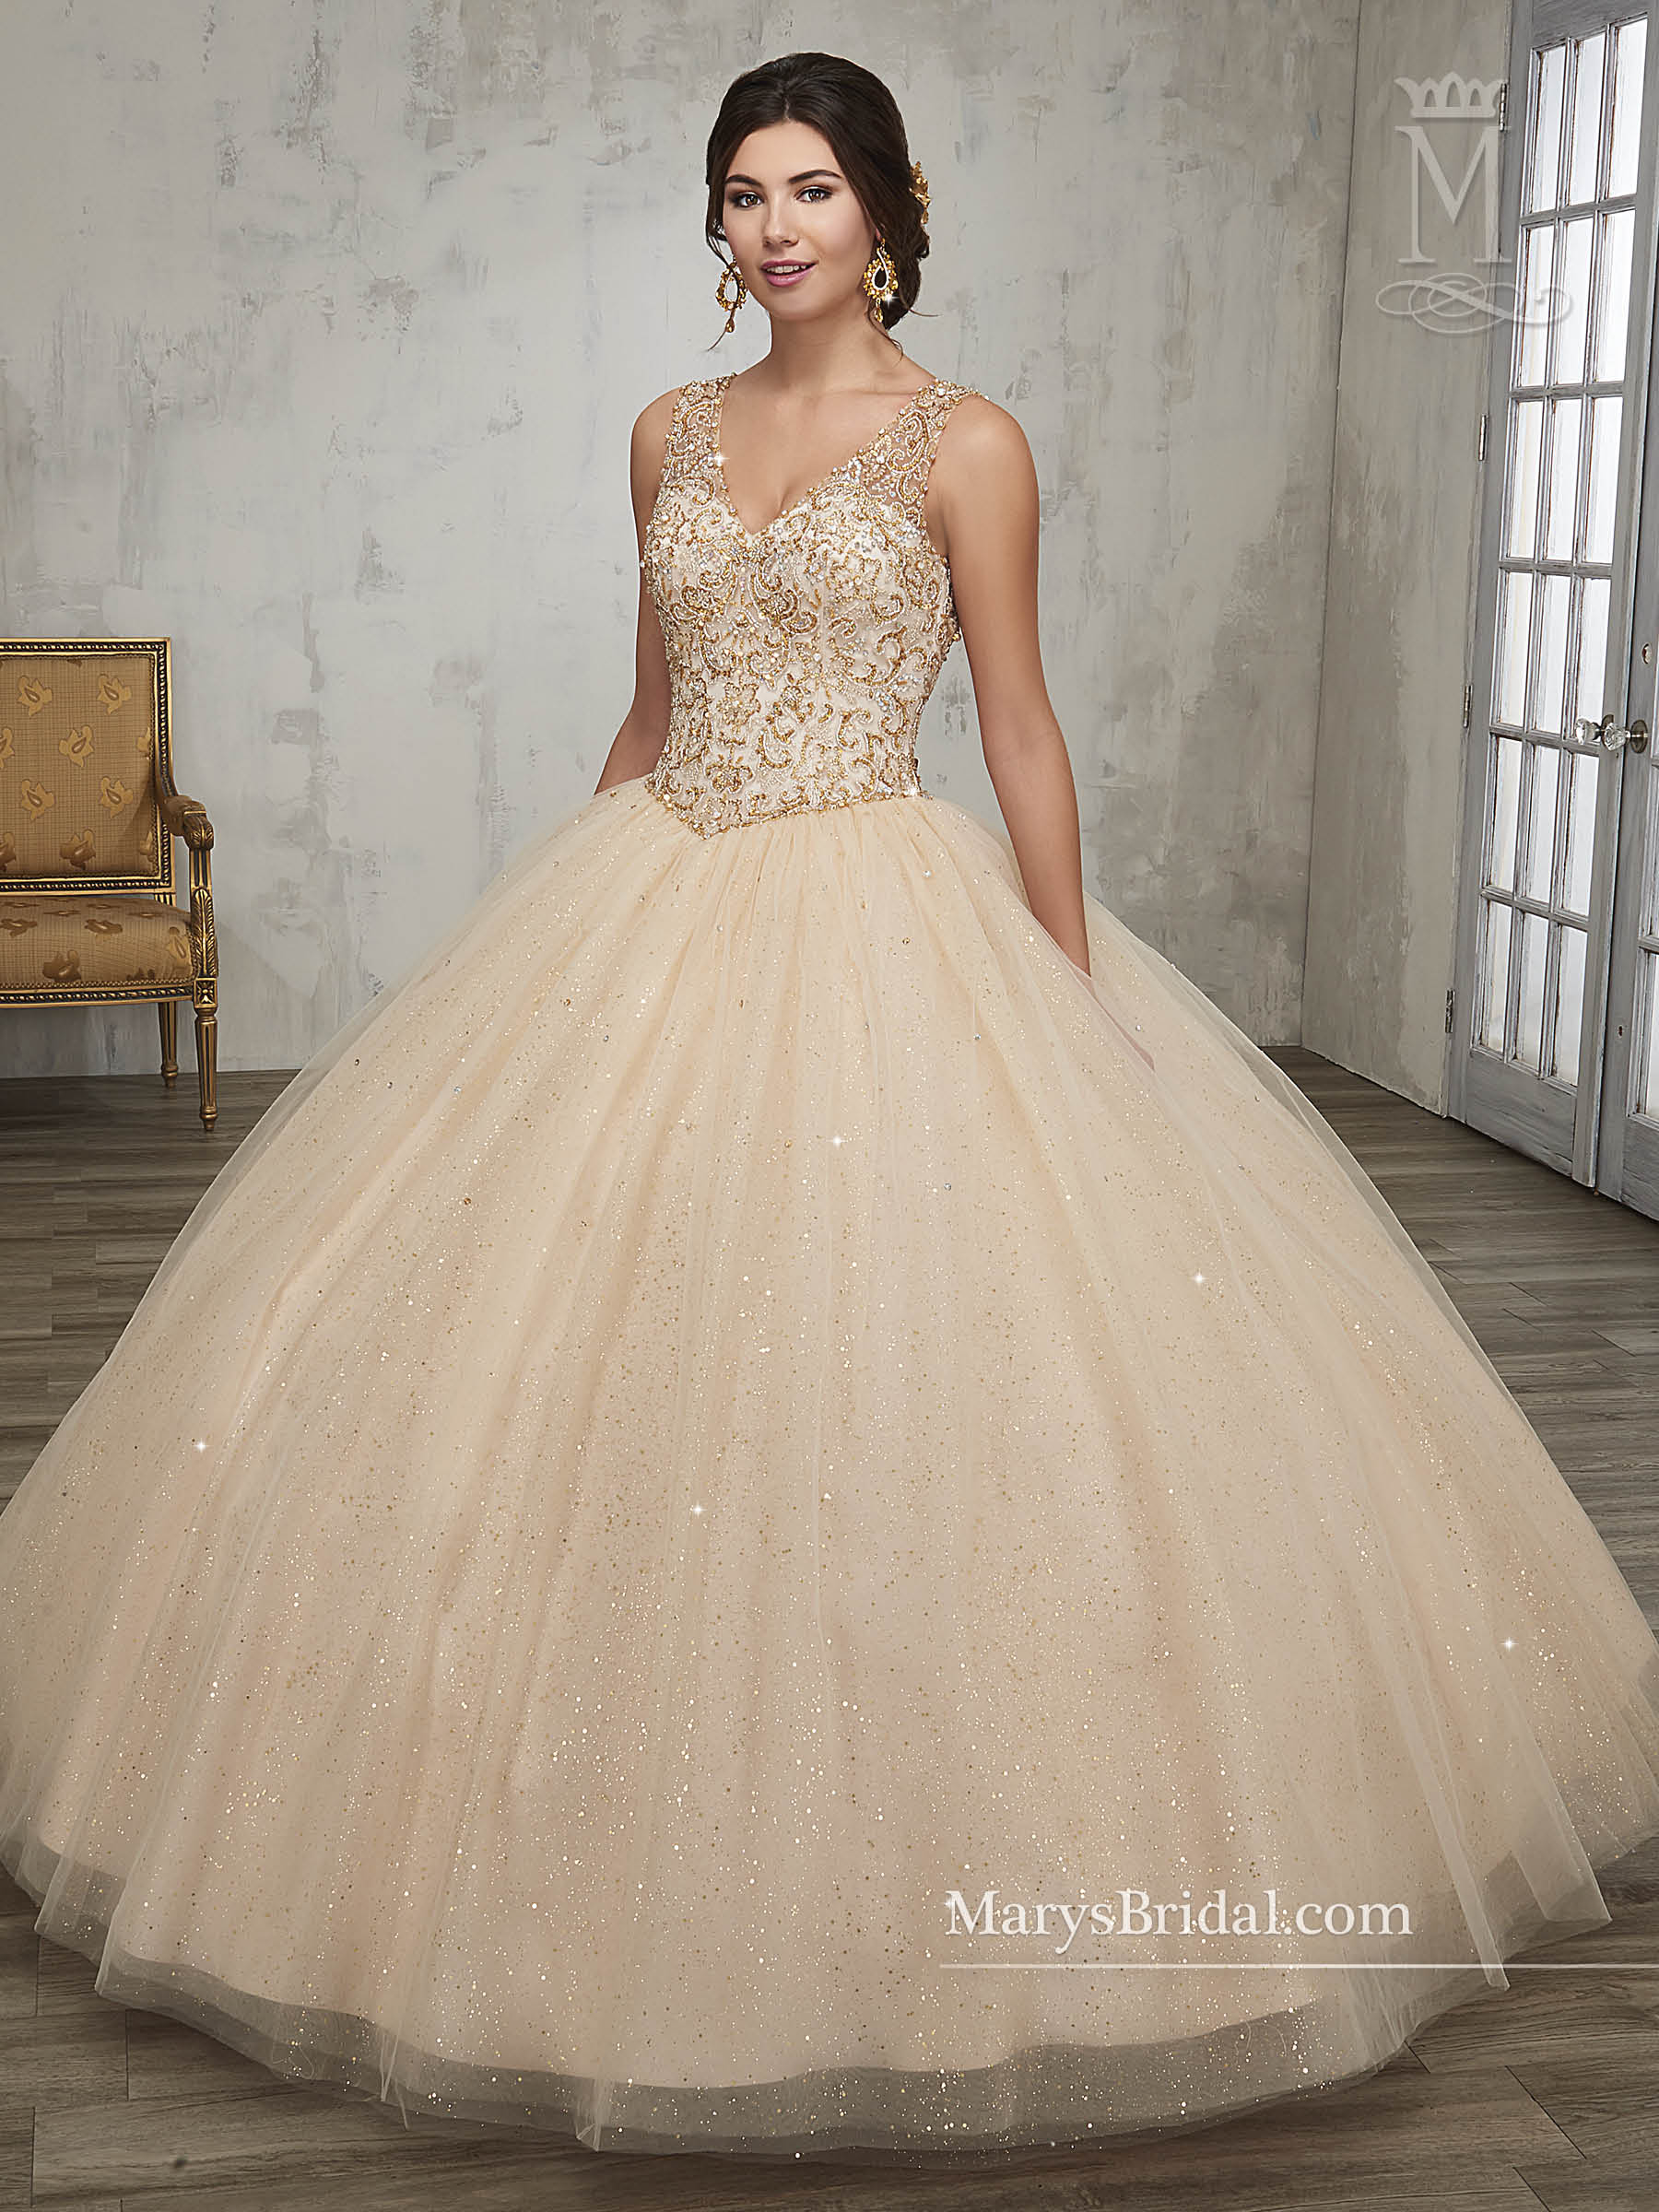 Marys Bridal 4q511 Quinceanera Dress Madamebridal Com